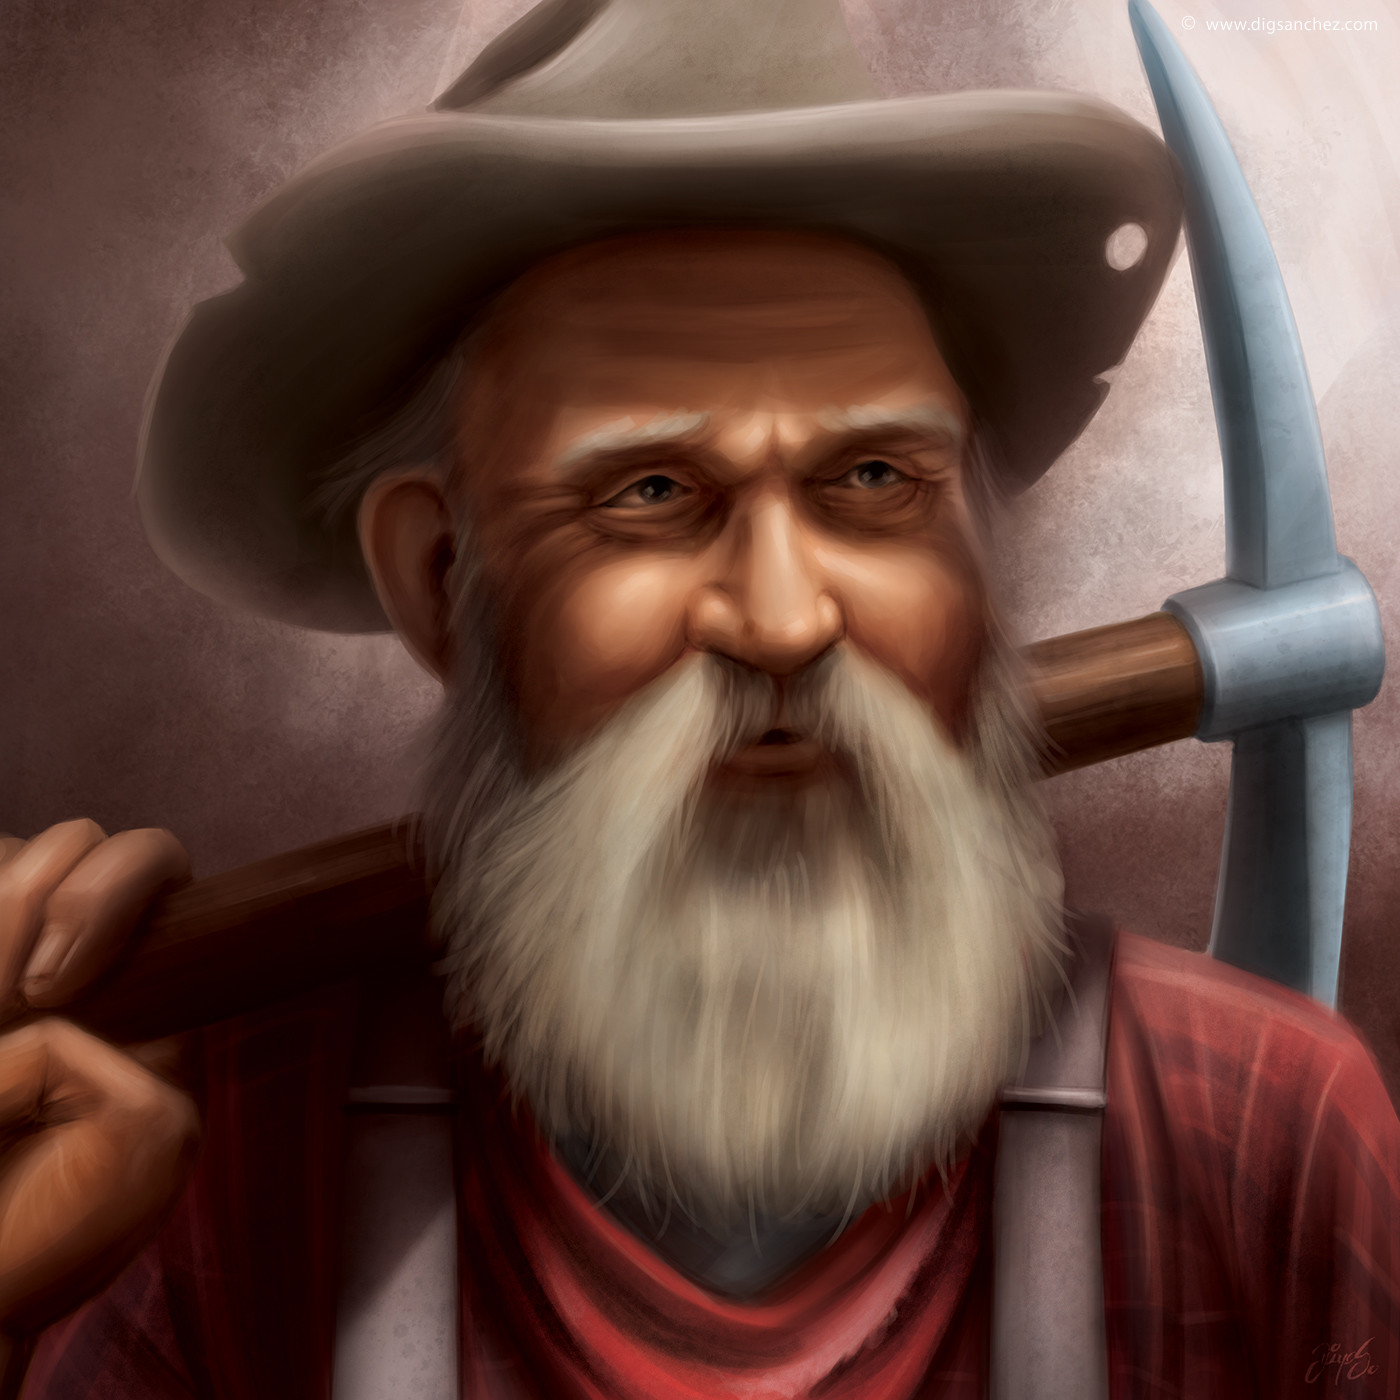 Game character - Miner